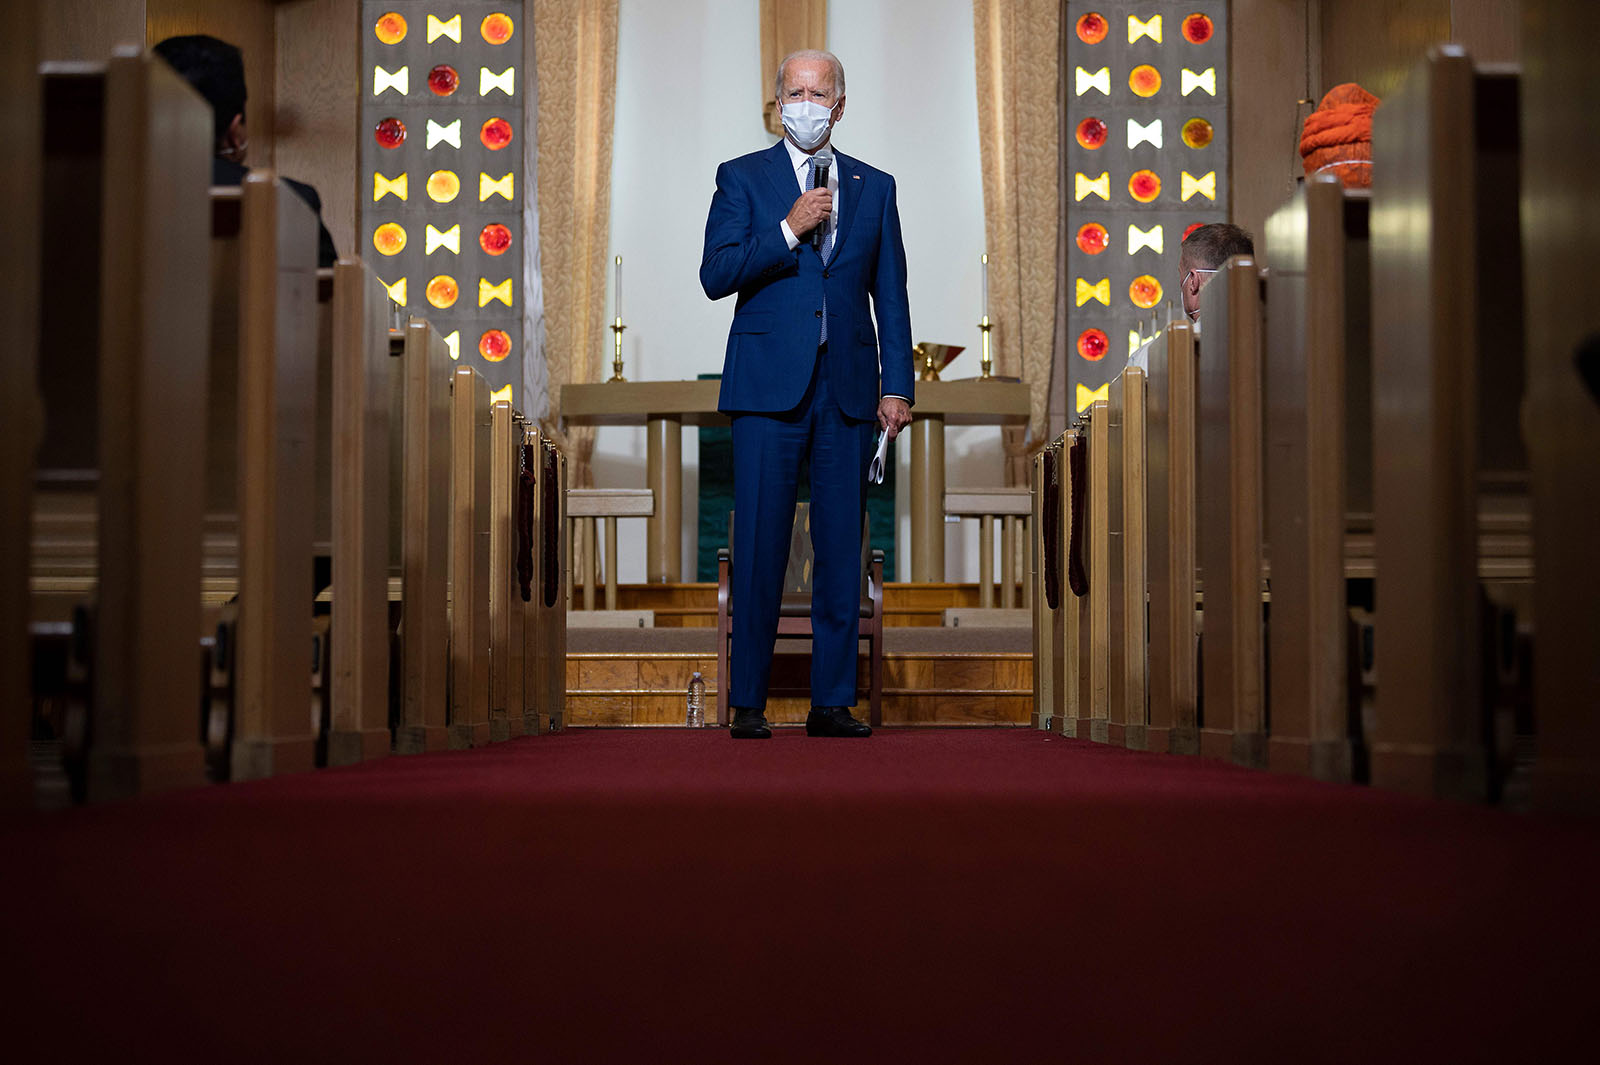 Democratic presidential candidate and former US Vice President Joe Biden speaks at Grace Lutheran Church in Kenosha, Wisconsin, on September 3, in the aftermath of the police shooting of Jacob Blake.